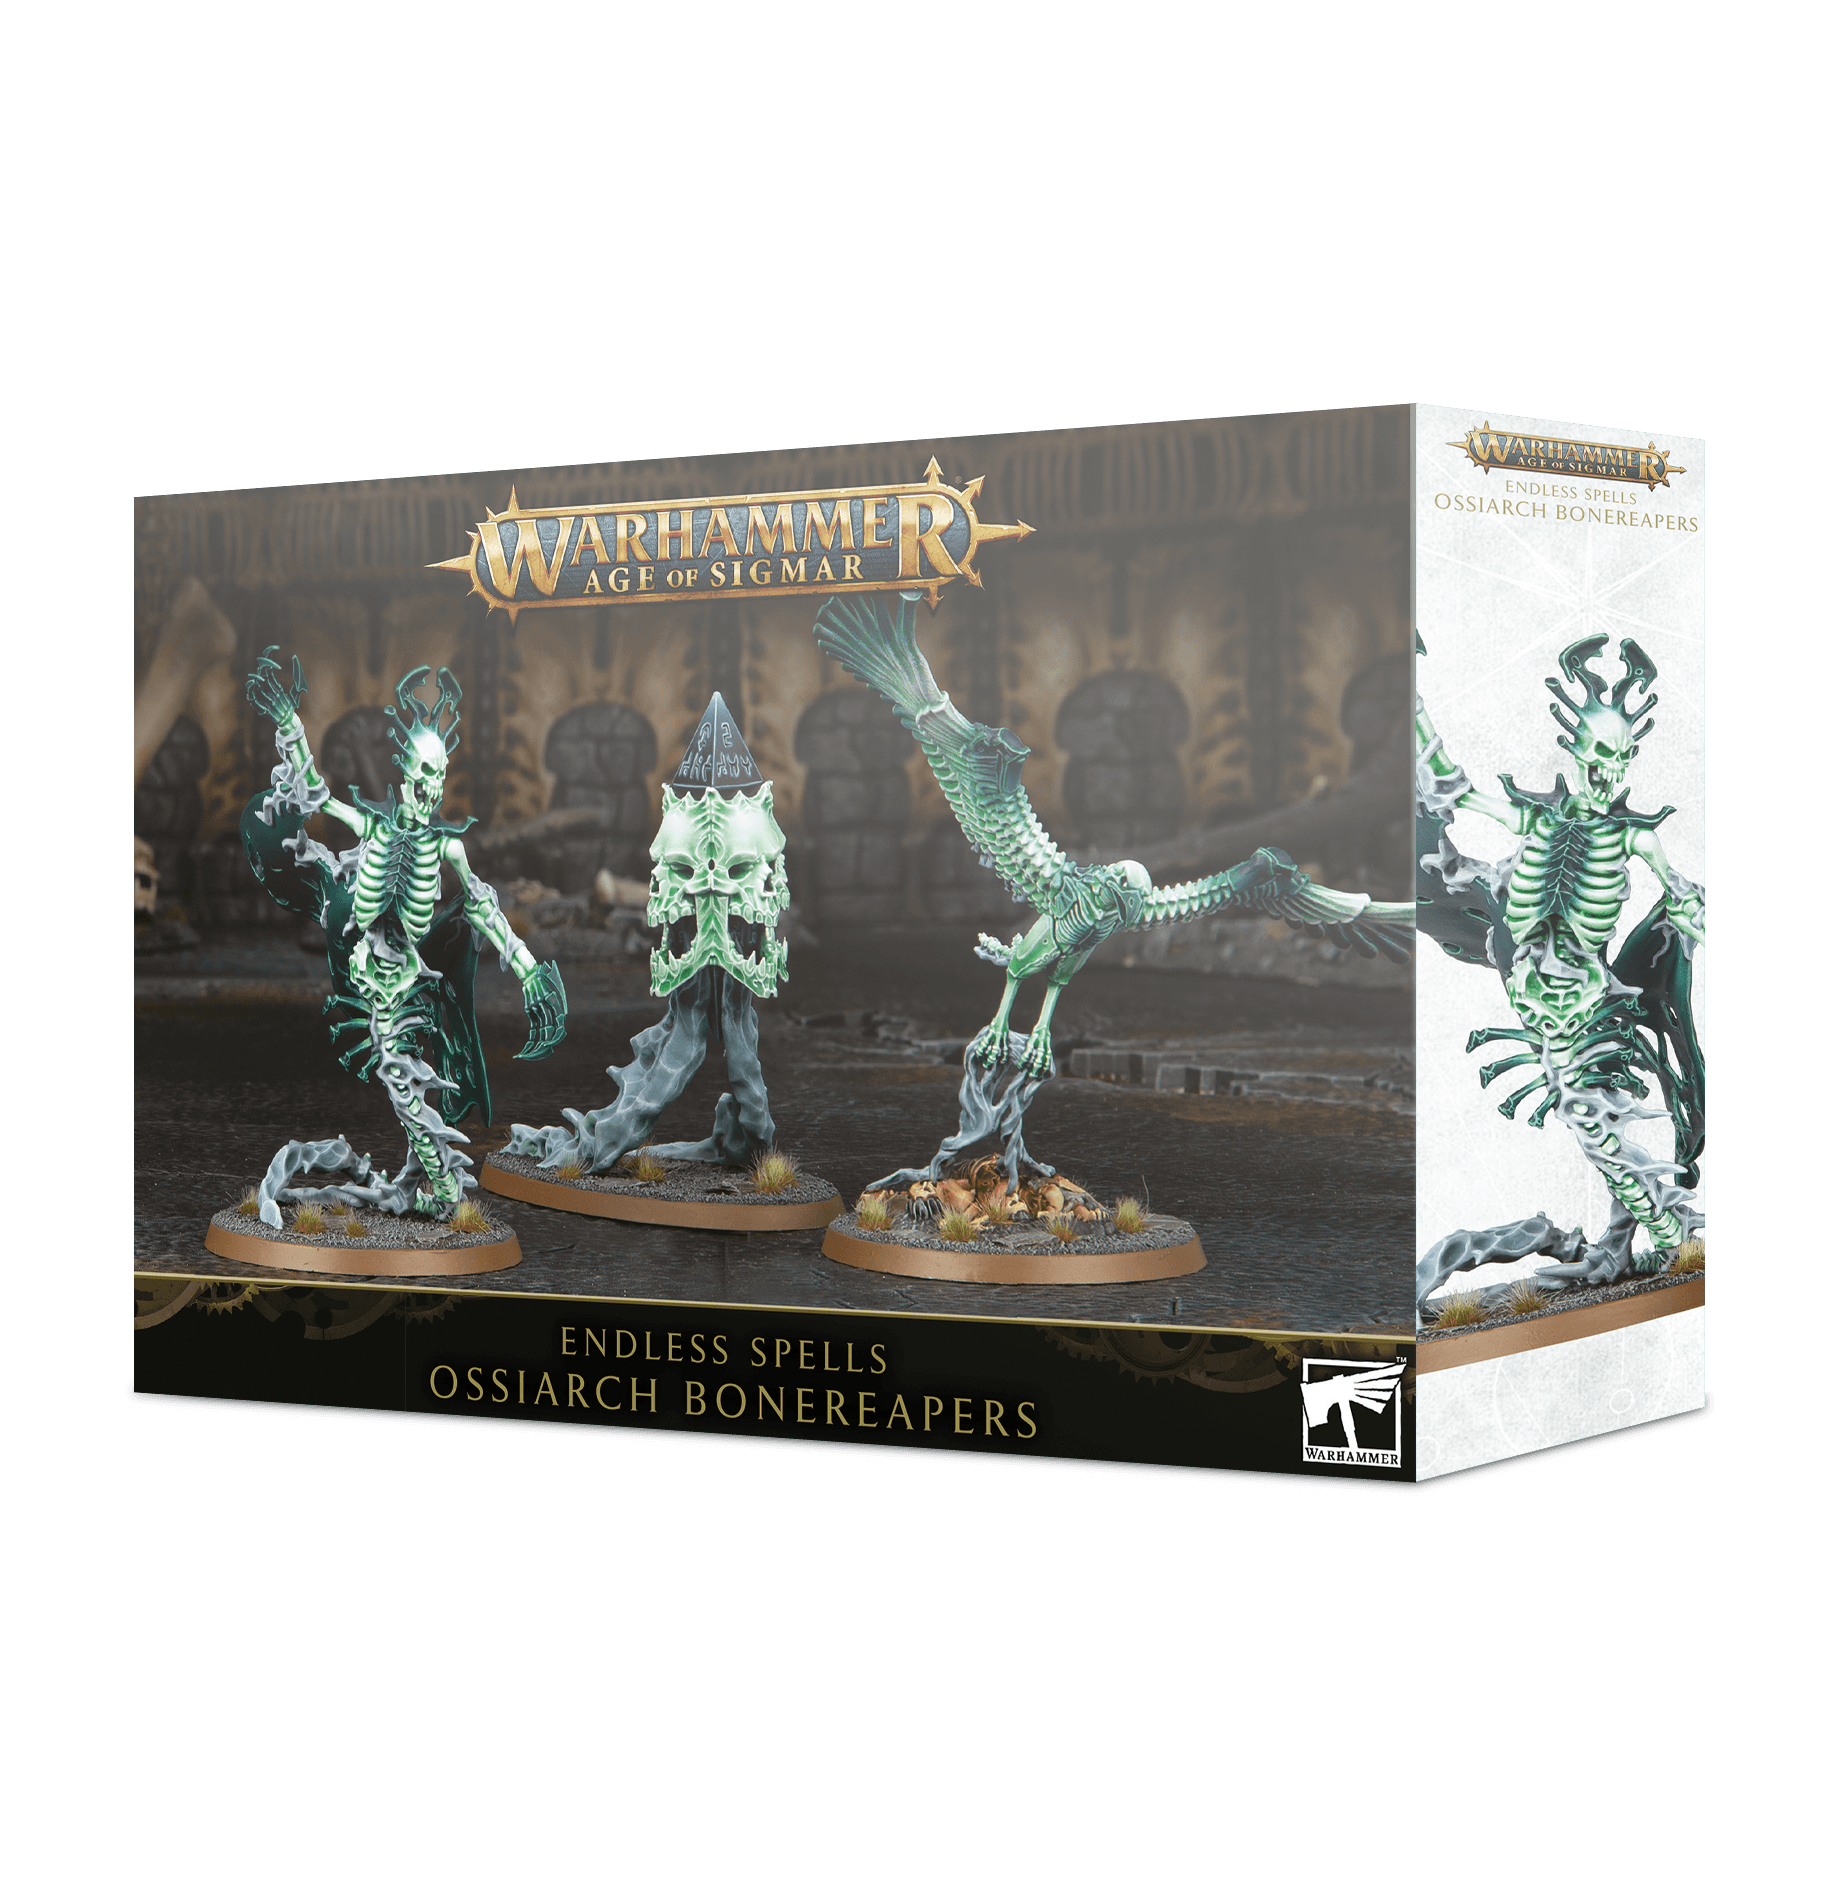 Warhammer Age Of Sigmar: Ossiarch Bonereapers: Endless Spells